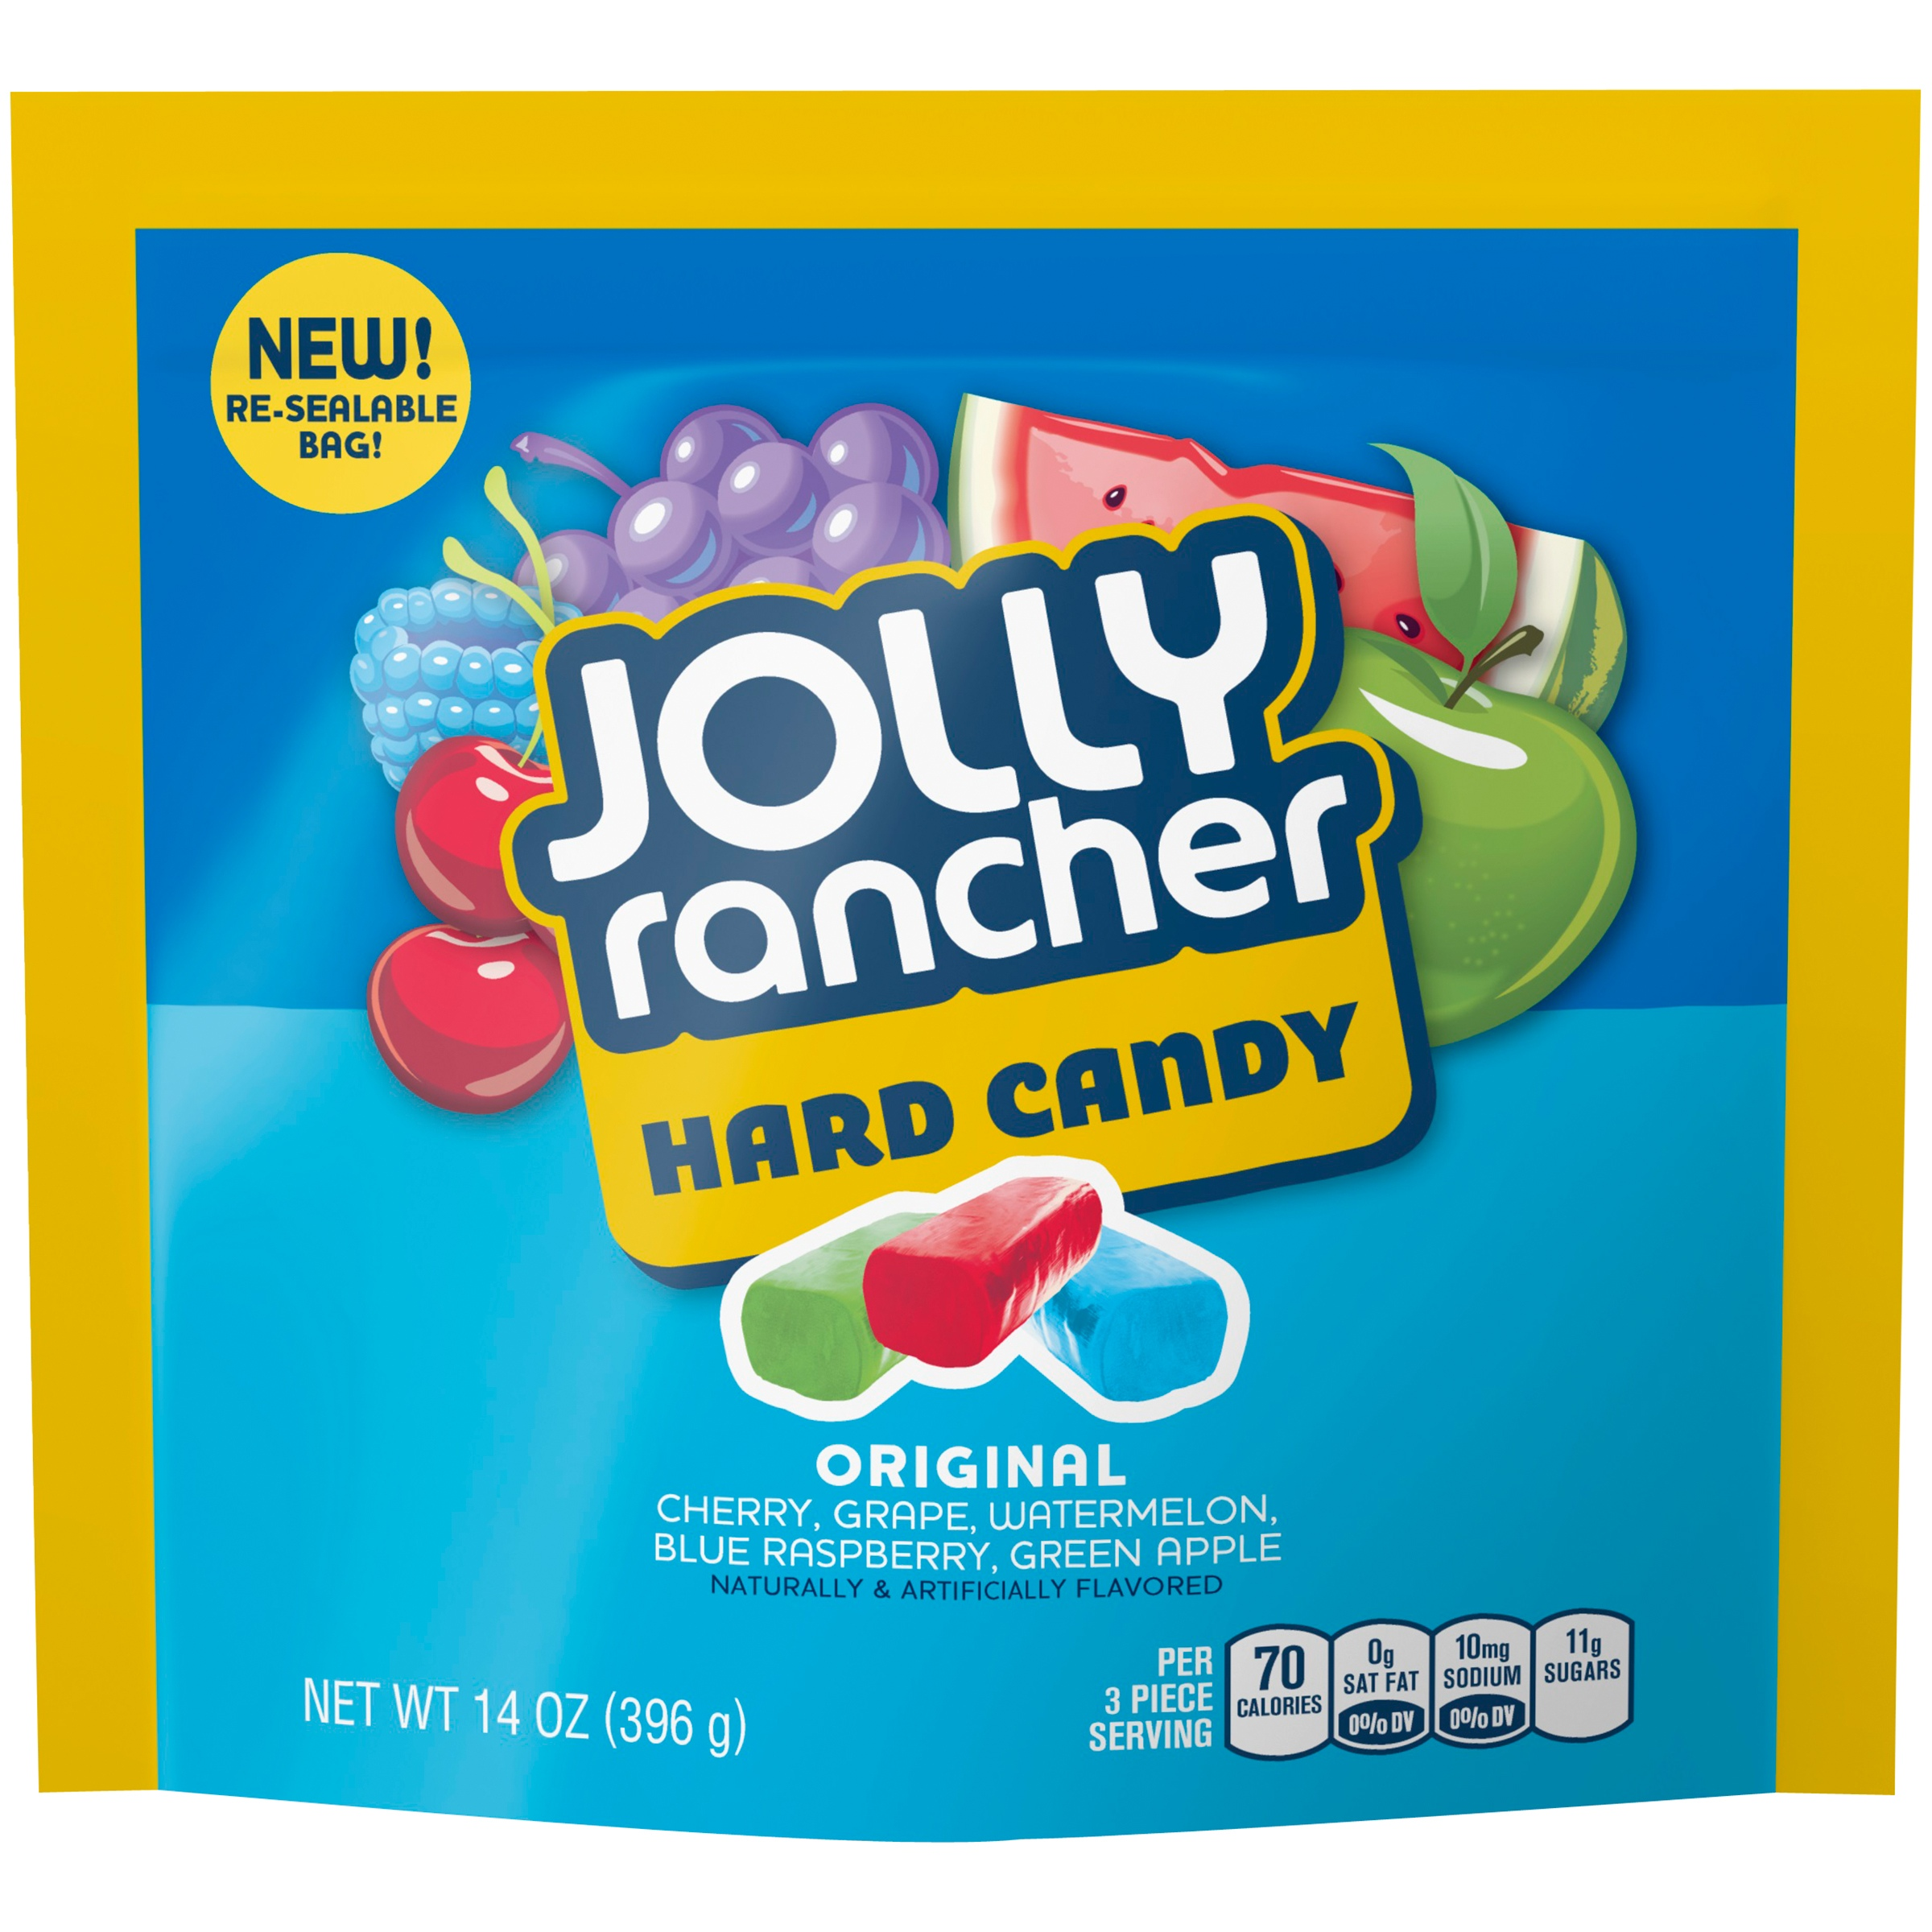 JOLLY RANCHER Hard Candy Assortment, 14 oz by The Hershey Company